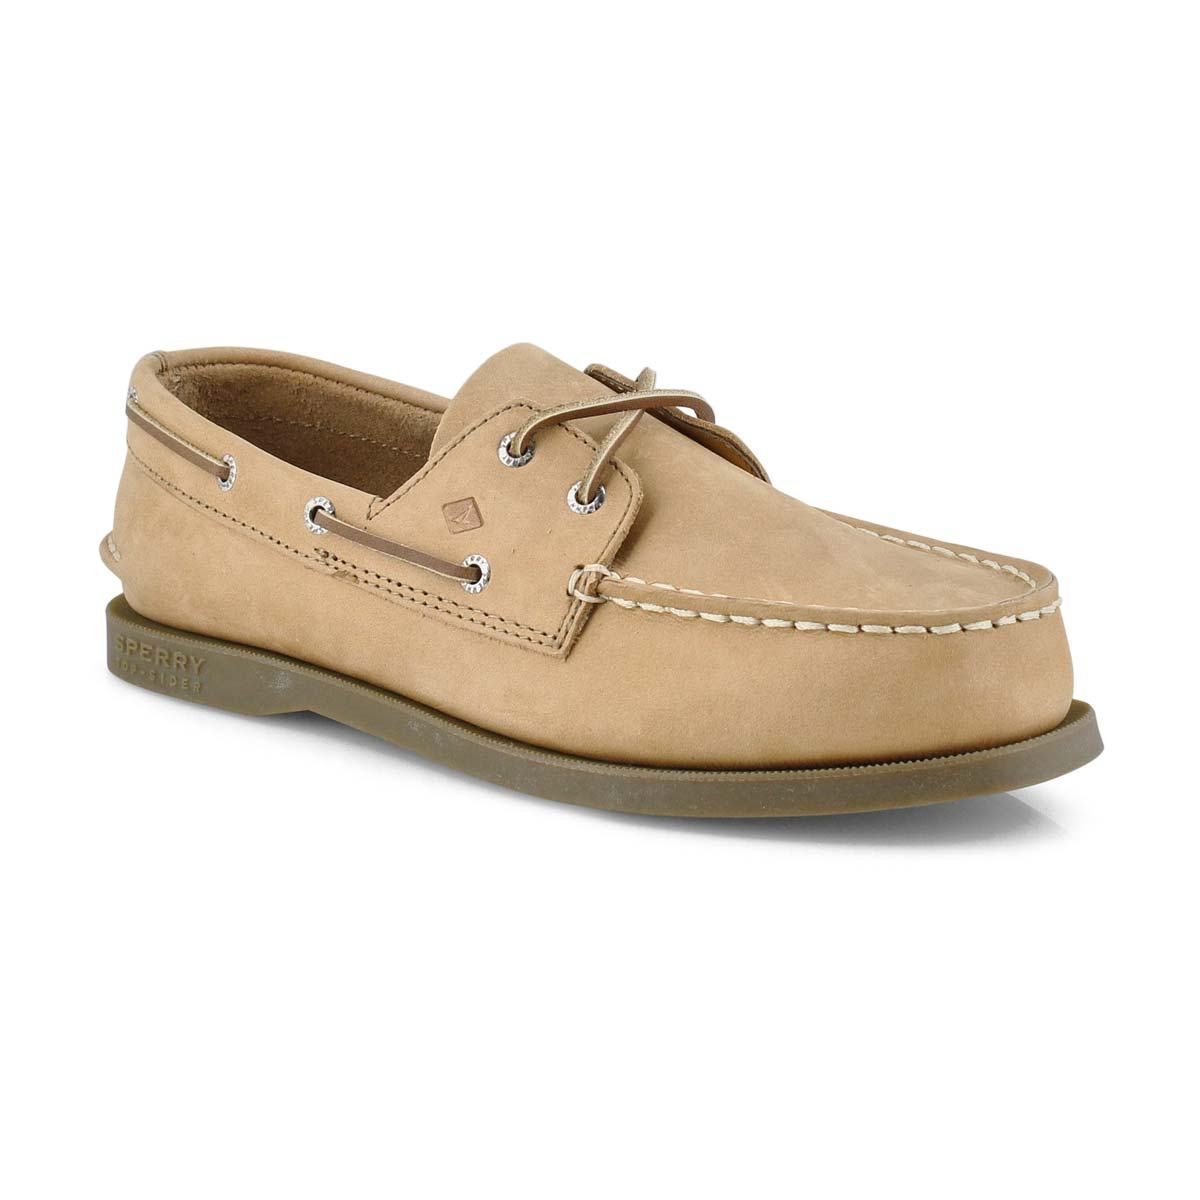 Boys' AUTHENTIC ORIGINAL 2-Eye sahara boat shoes